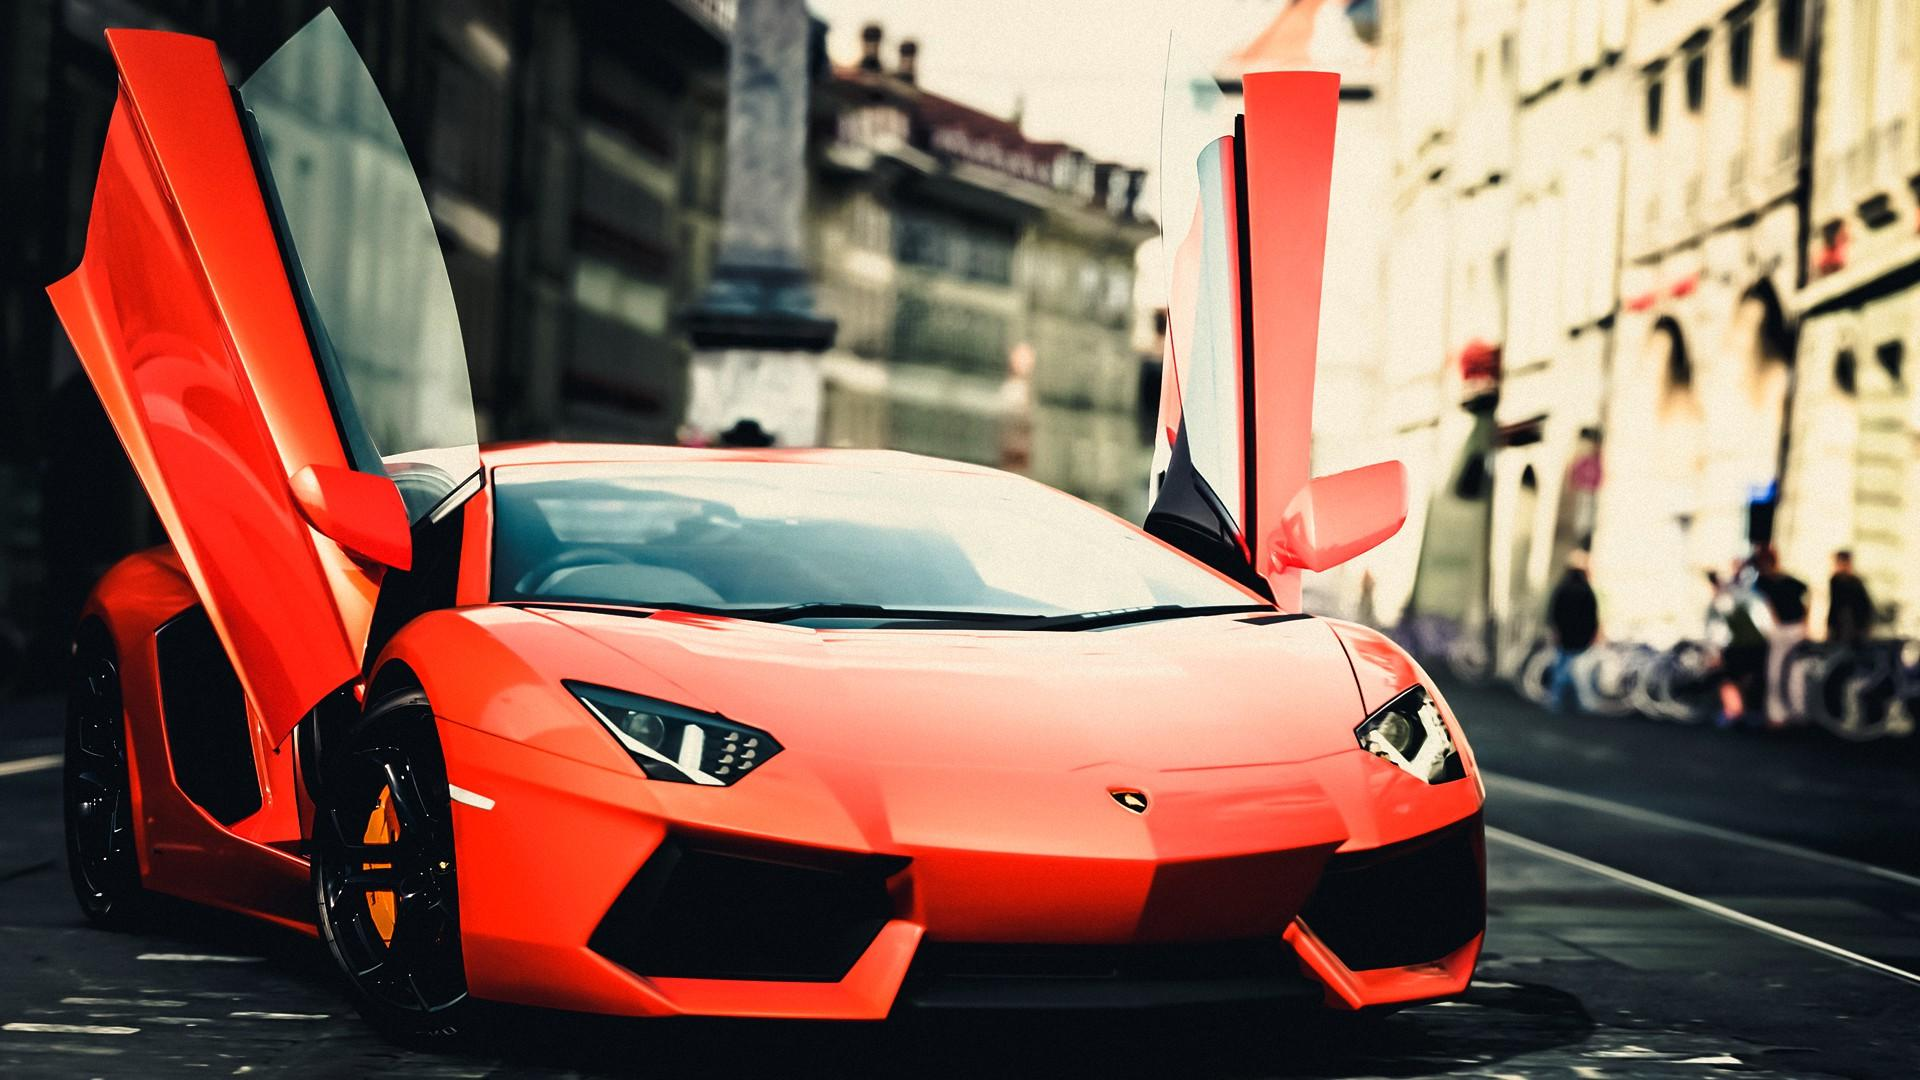 Supercar Lamborghini Wallpaper 1920x1080